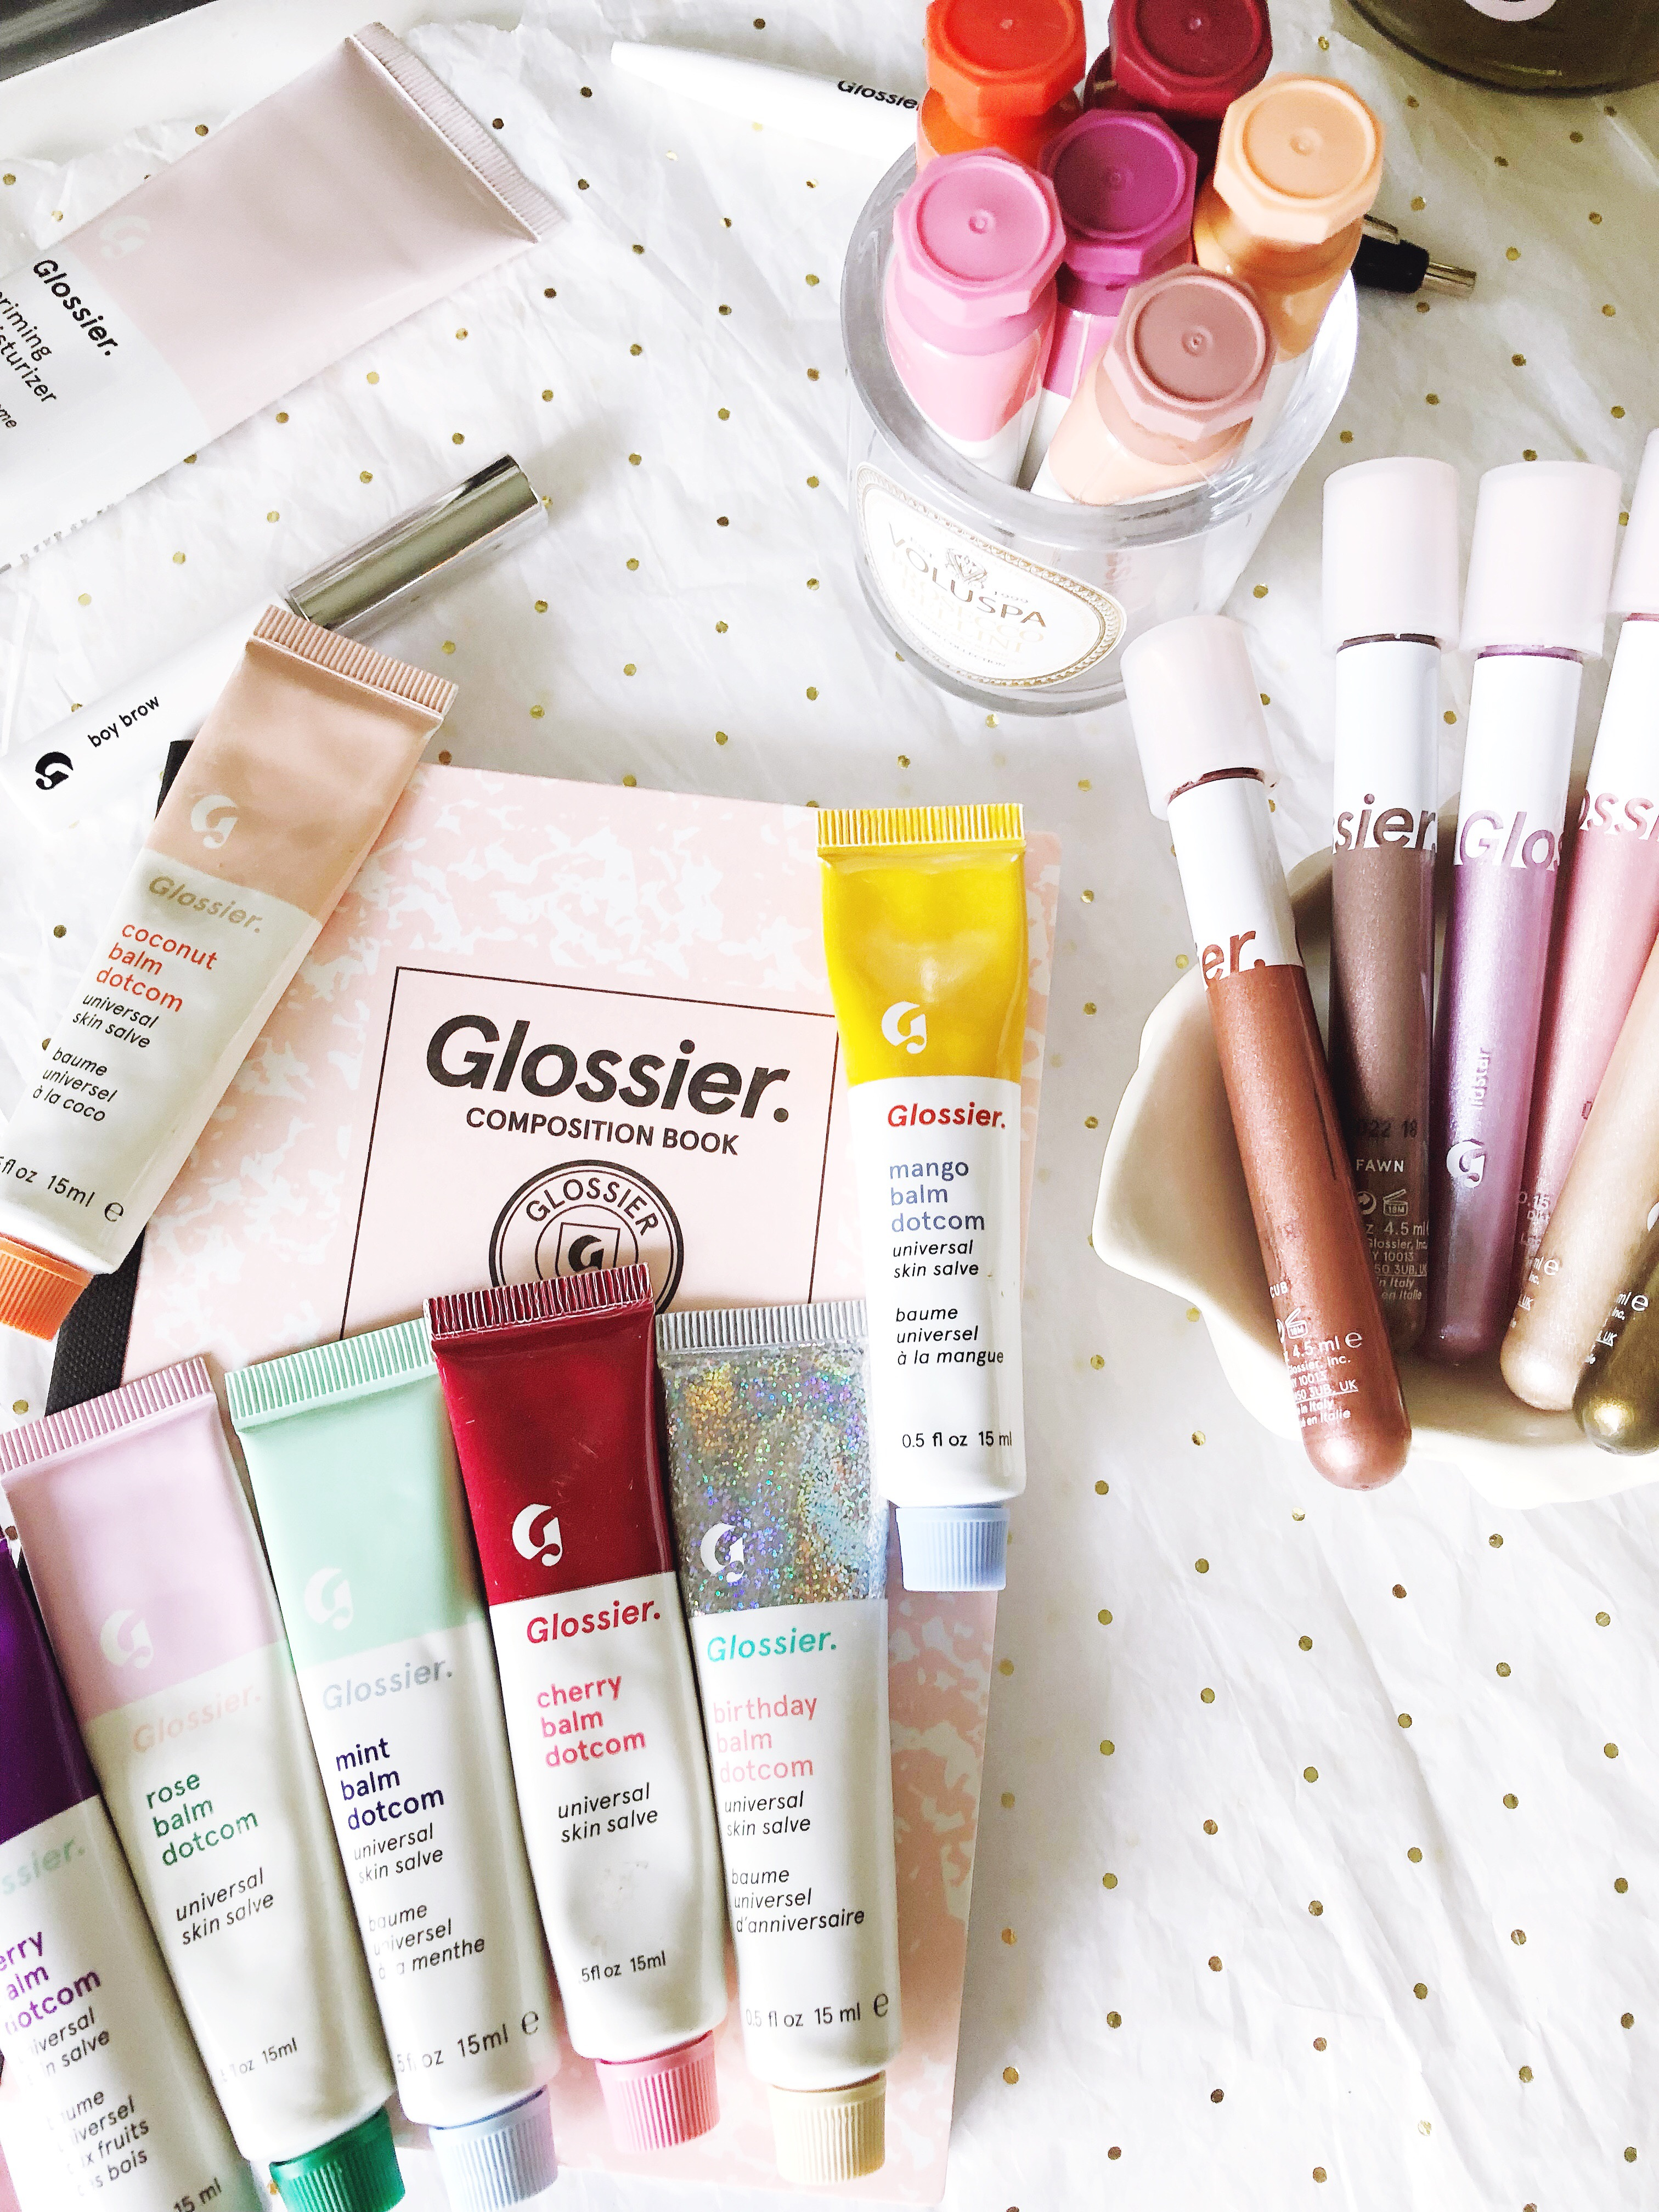 Ranking My Favorite Glossier Makeup Shades via Politics of Pretty